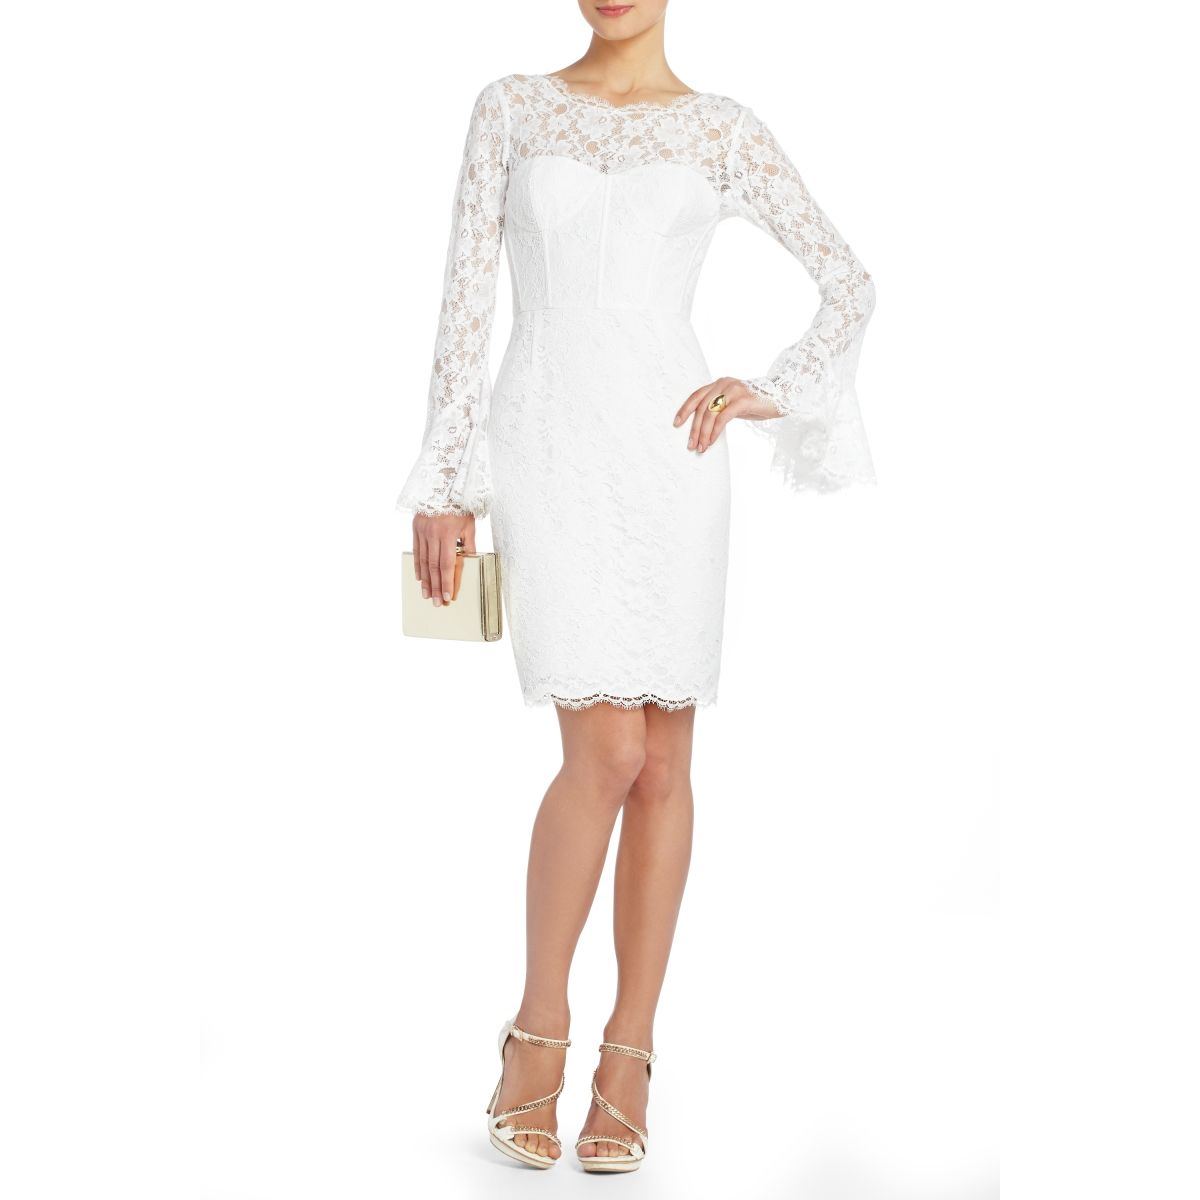 Bcbg salina lace corset cocktail dress wedding dresses rehearsal